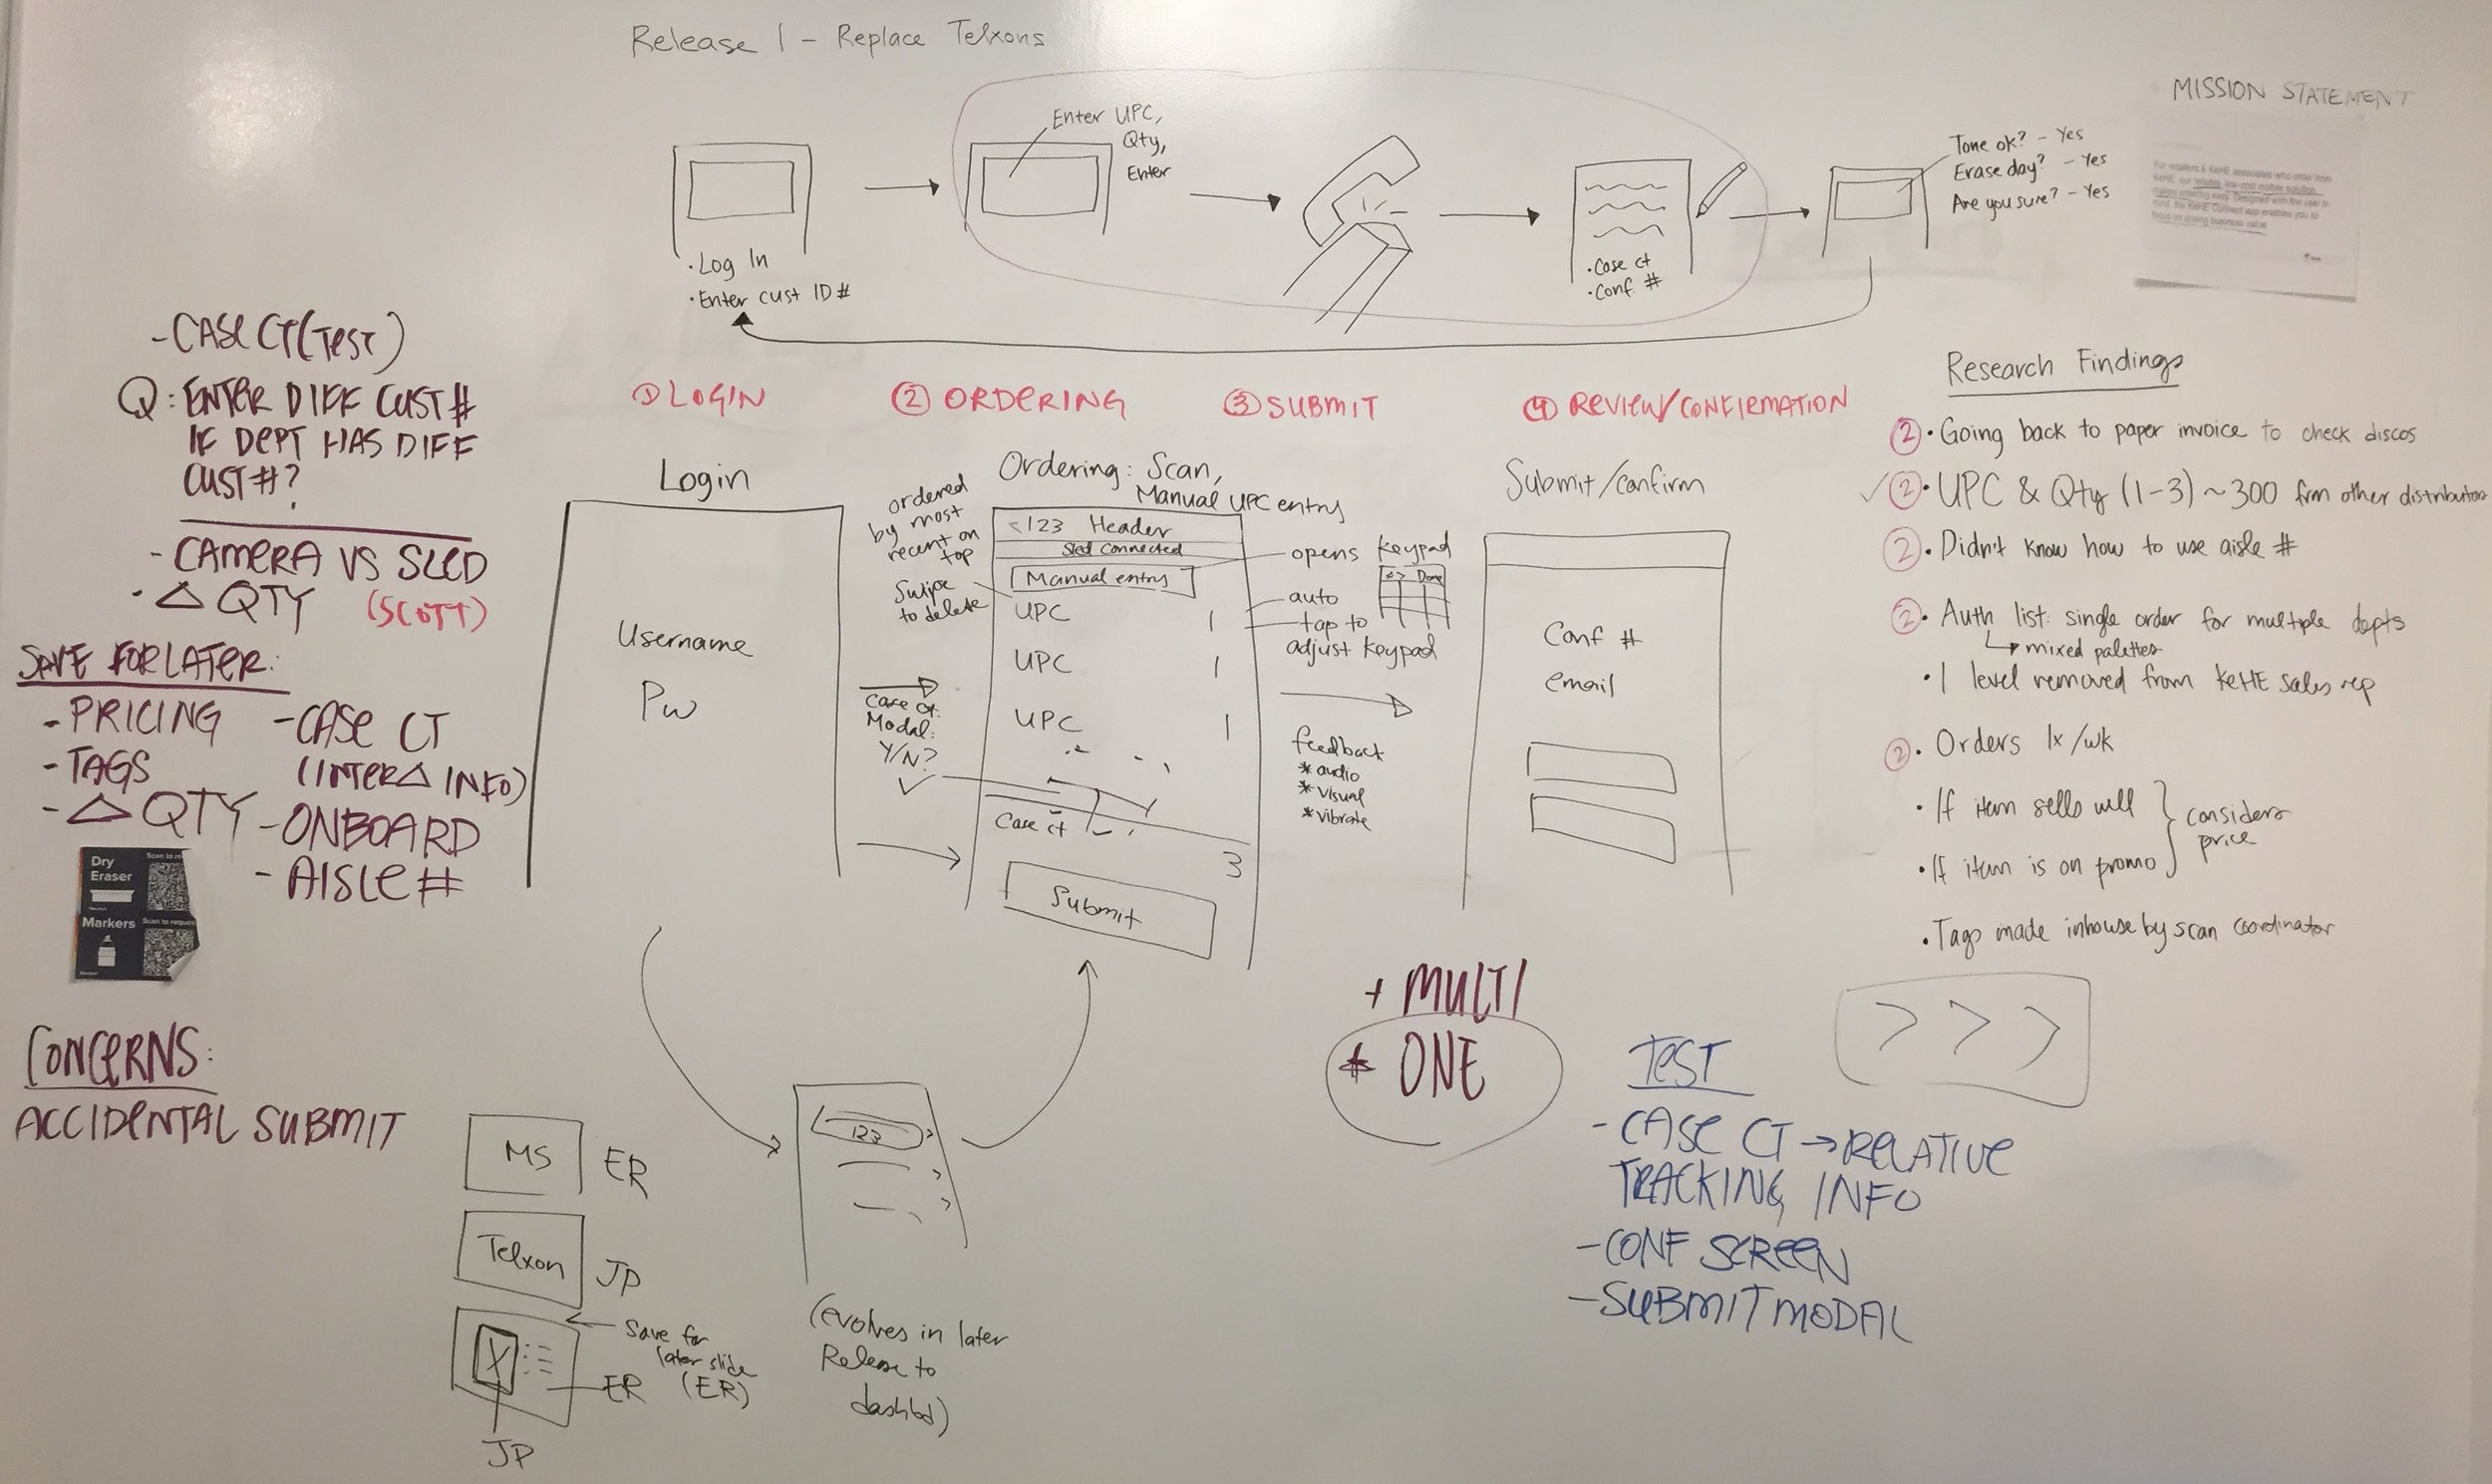 POC whiteboarding with existing journey shown